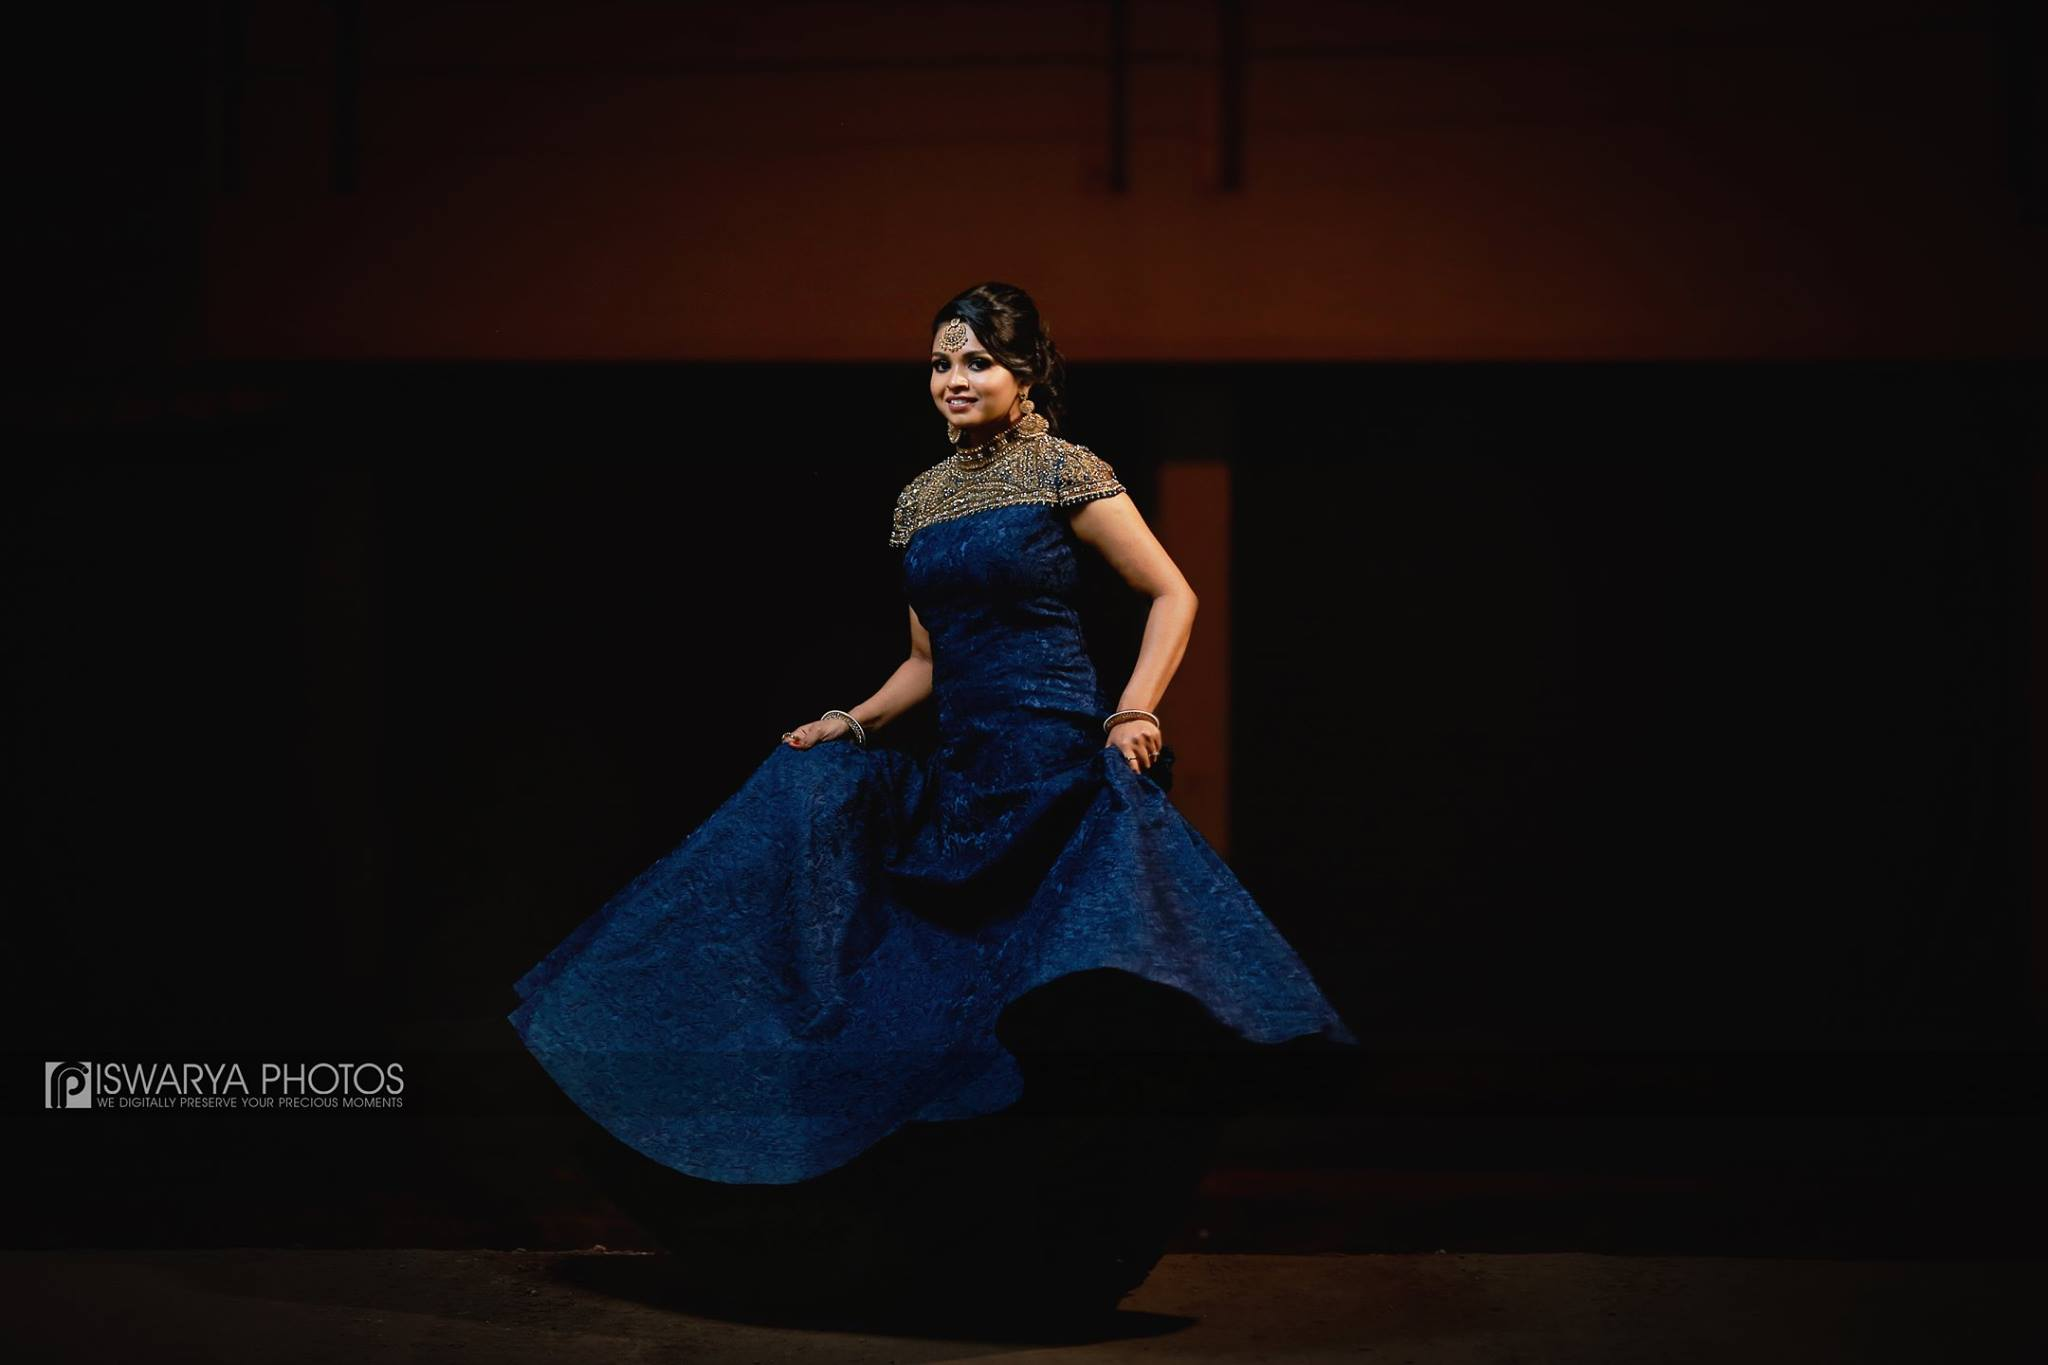 Royal Blue Bridal Jewelry Gown